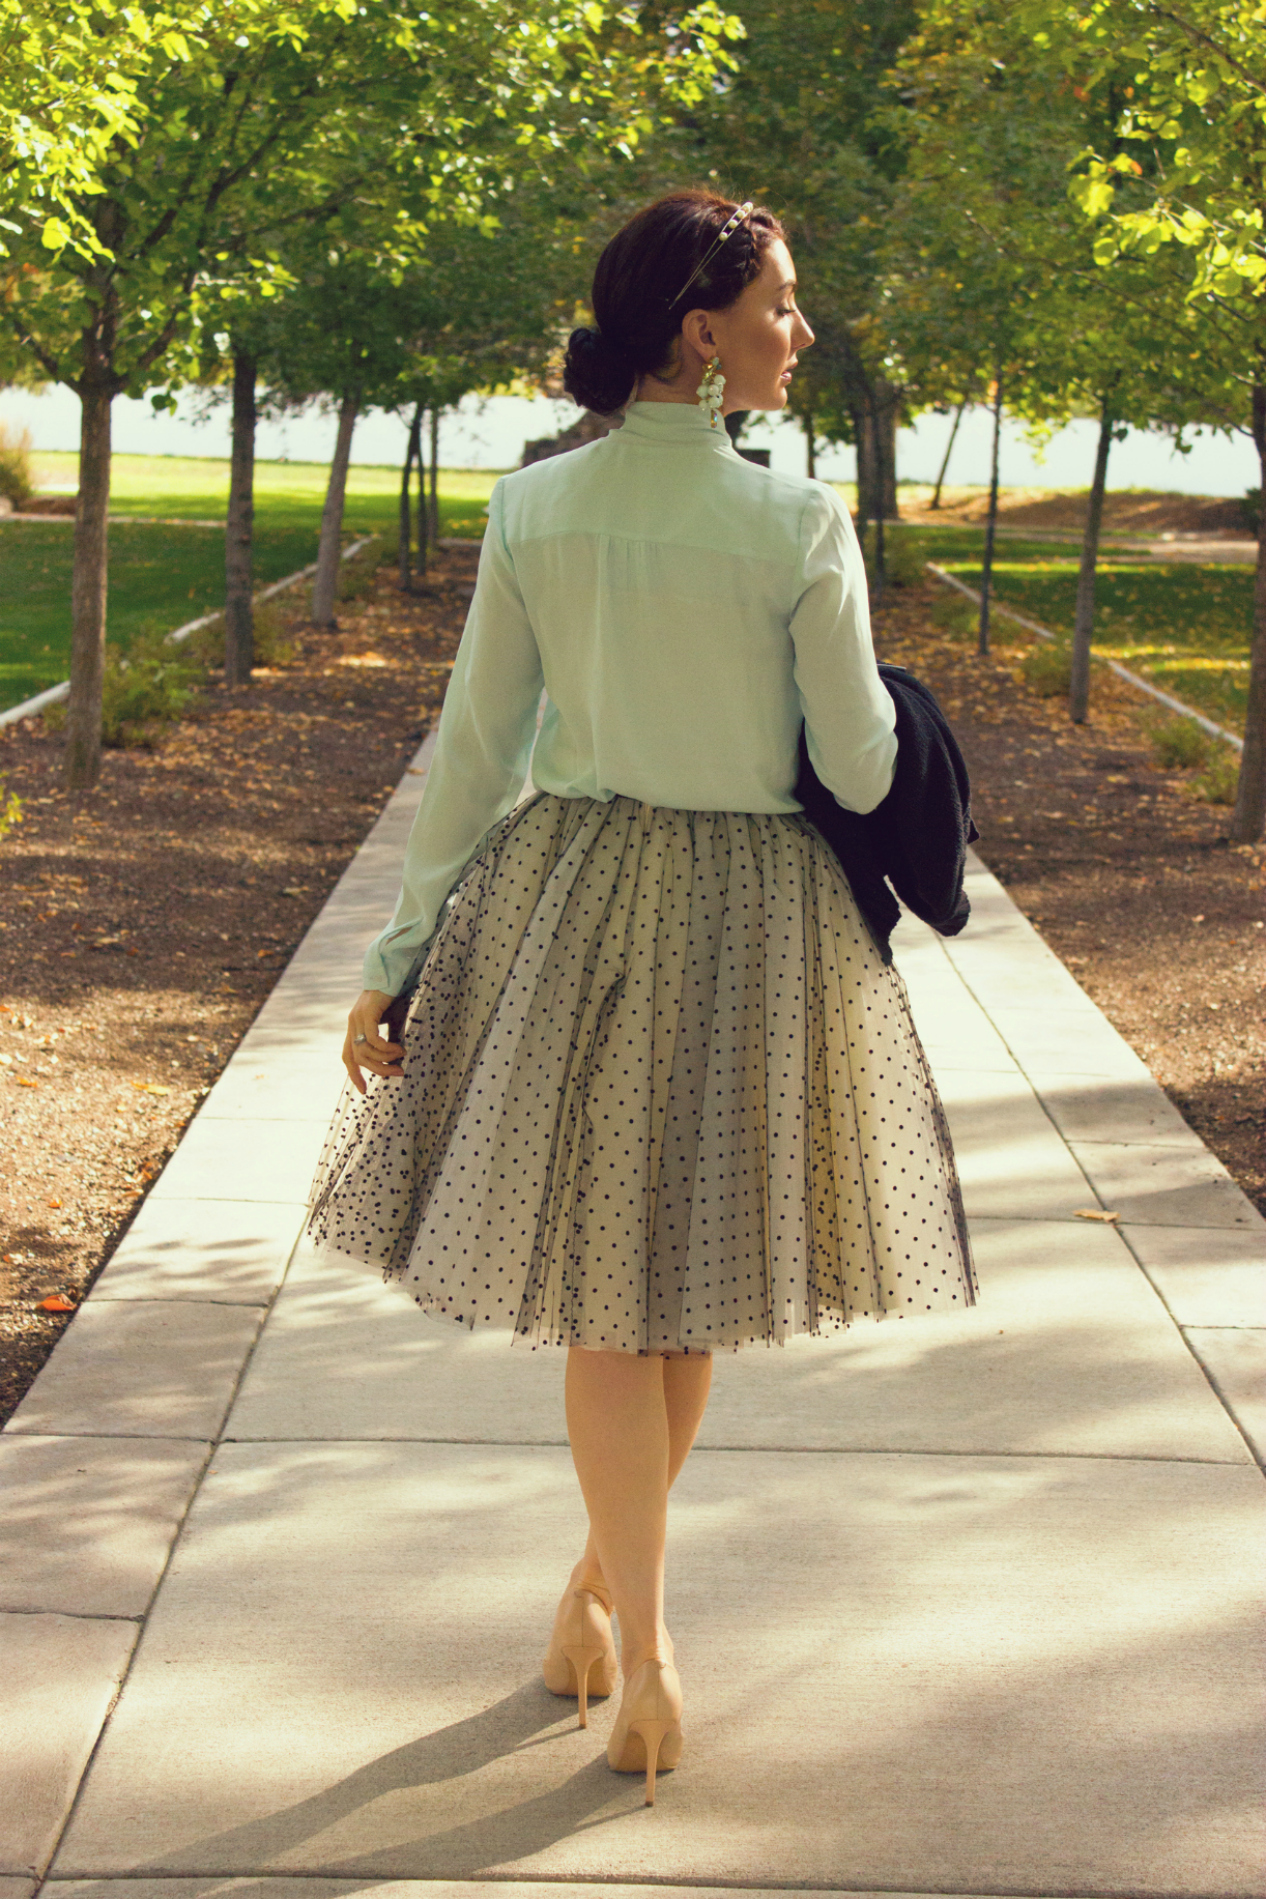 Ladylike outfit inspiration, featuring Reathua's tulle skirt